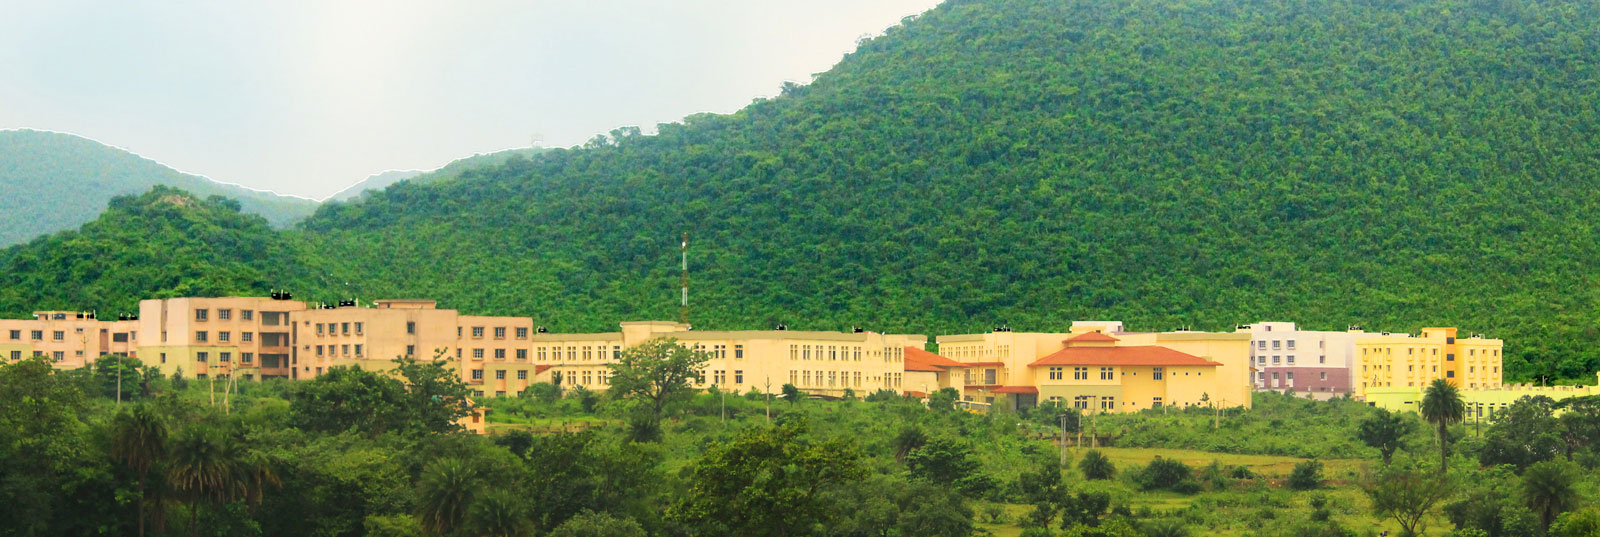 Government College of Engineering, Keonjhar